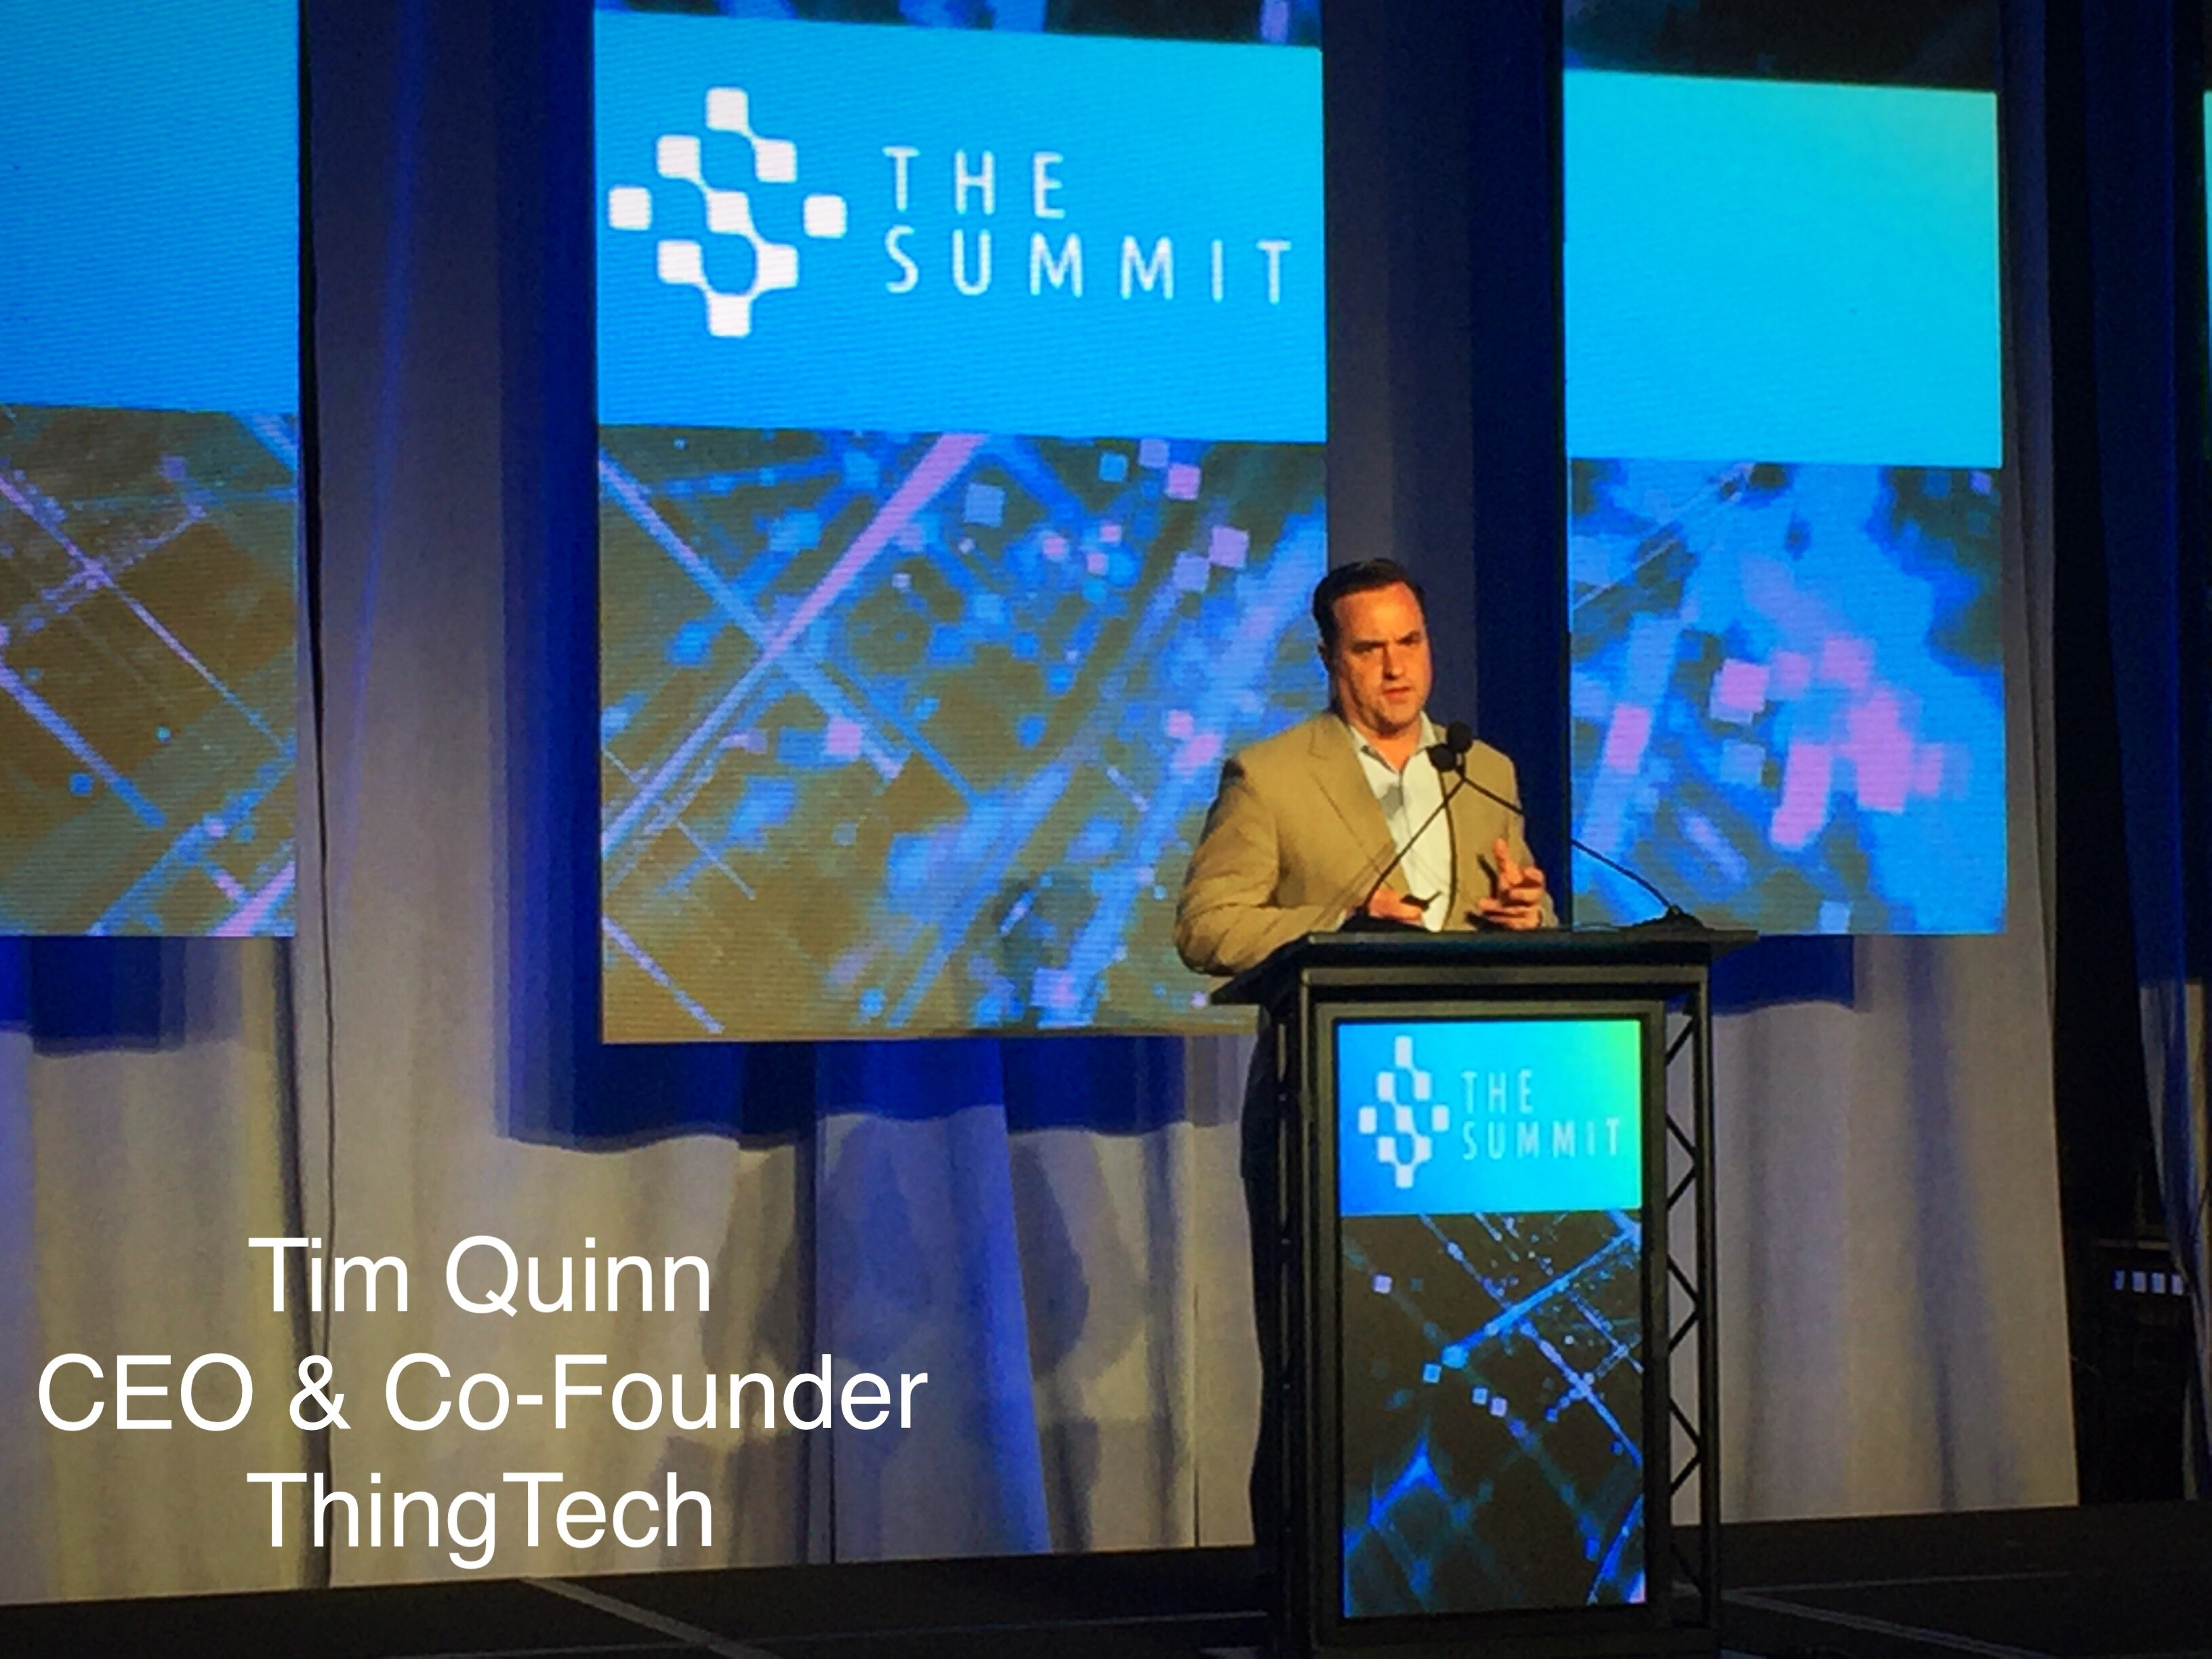 Tim Quinn, ThingTech, TAG, The Summit 2018, ThingTech, 2018 Top 10 Innovation Award